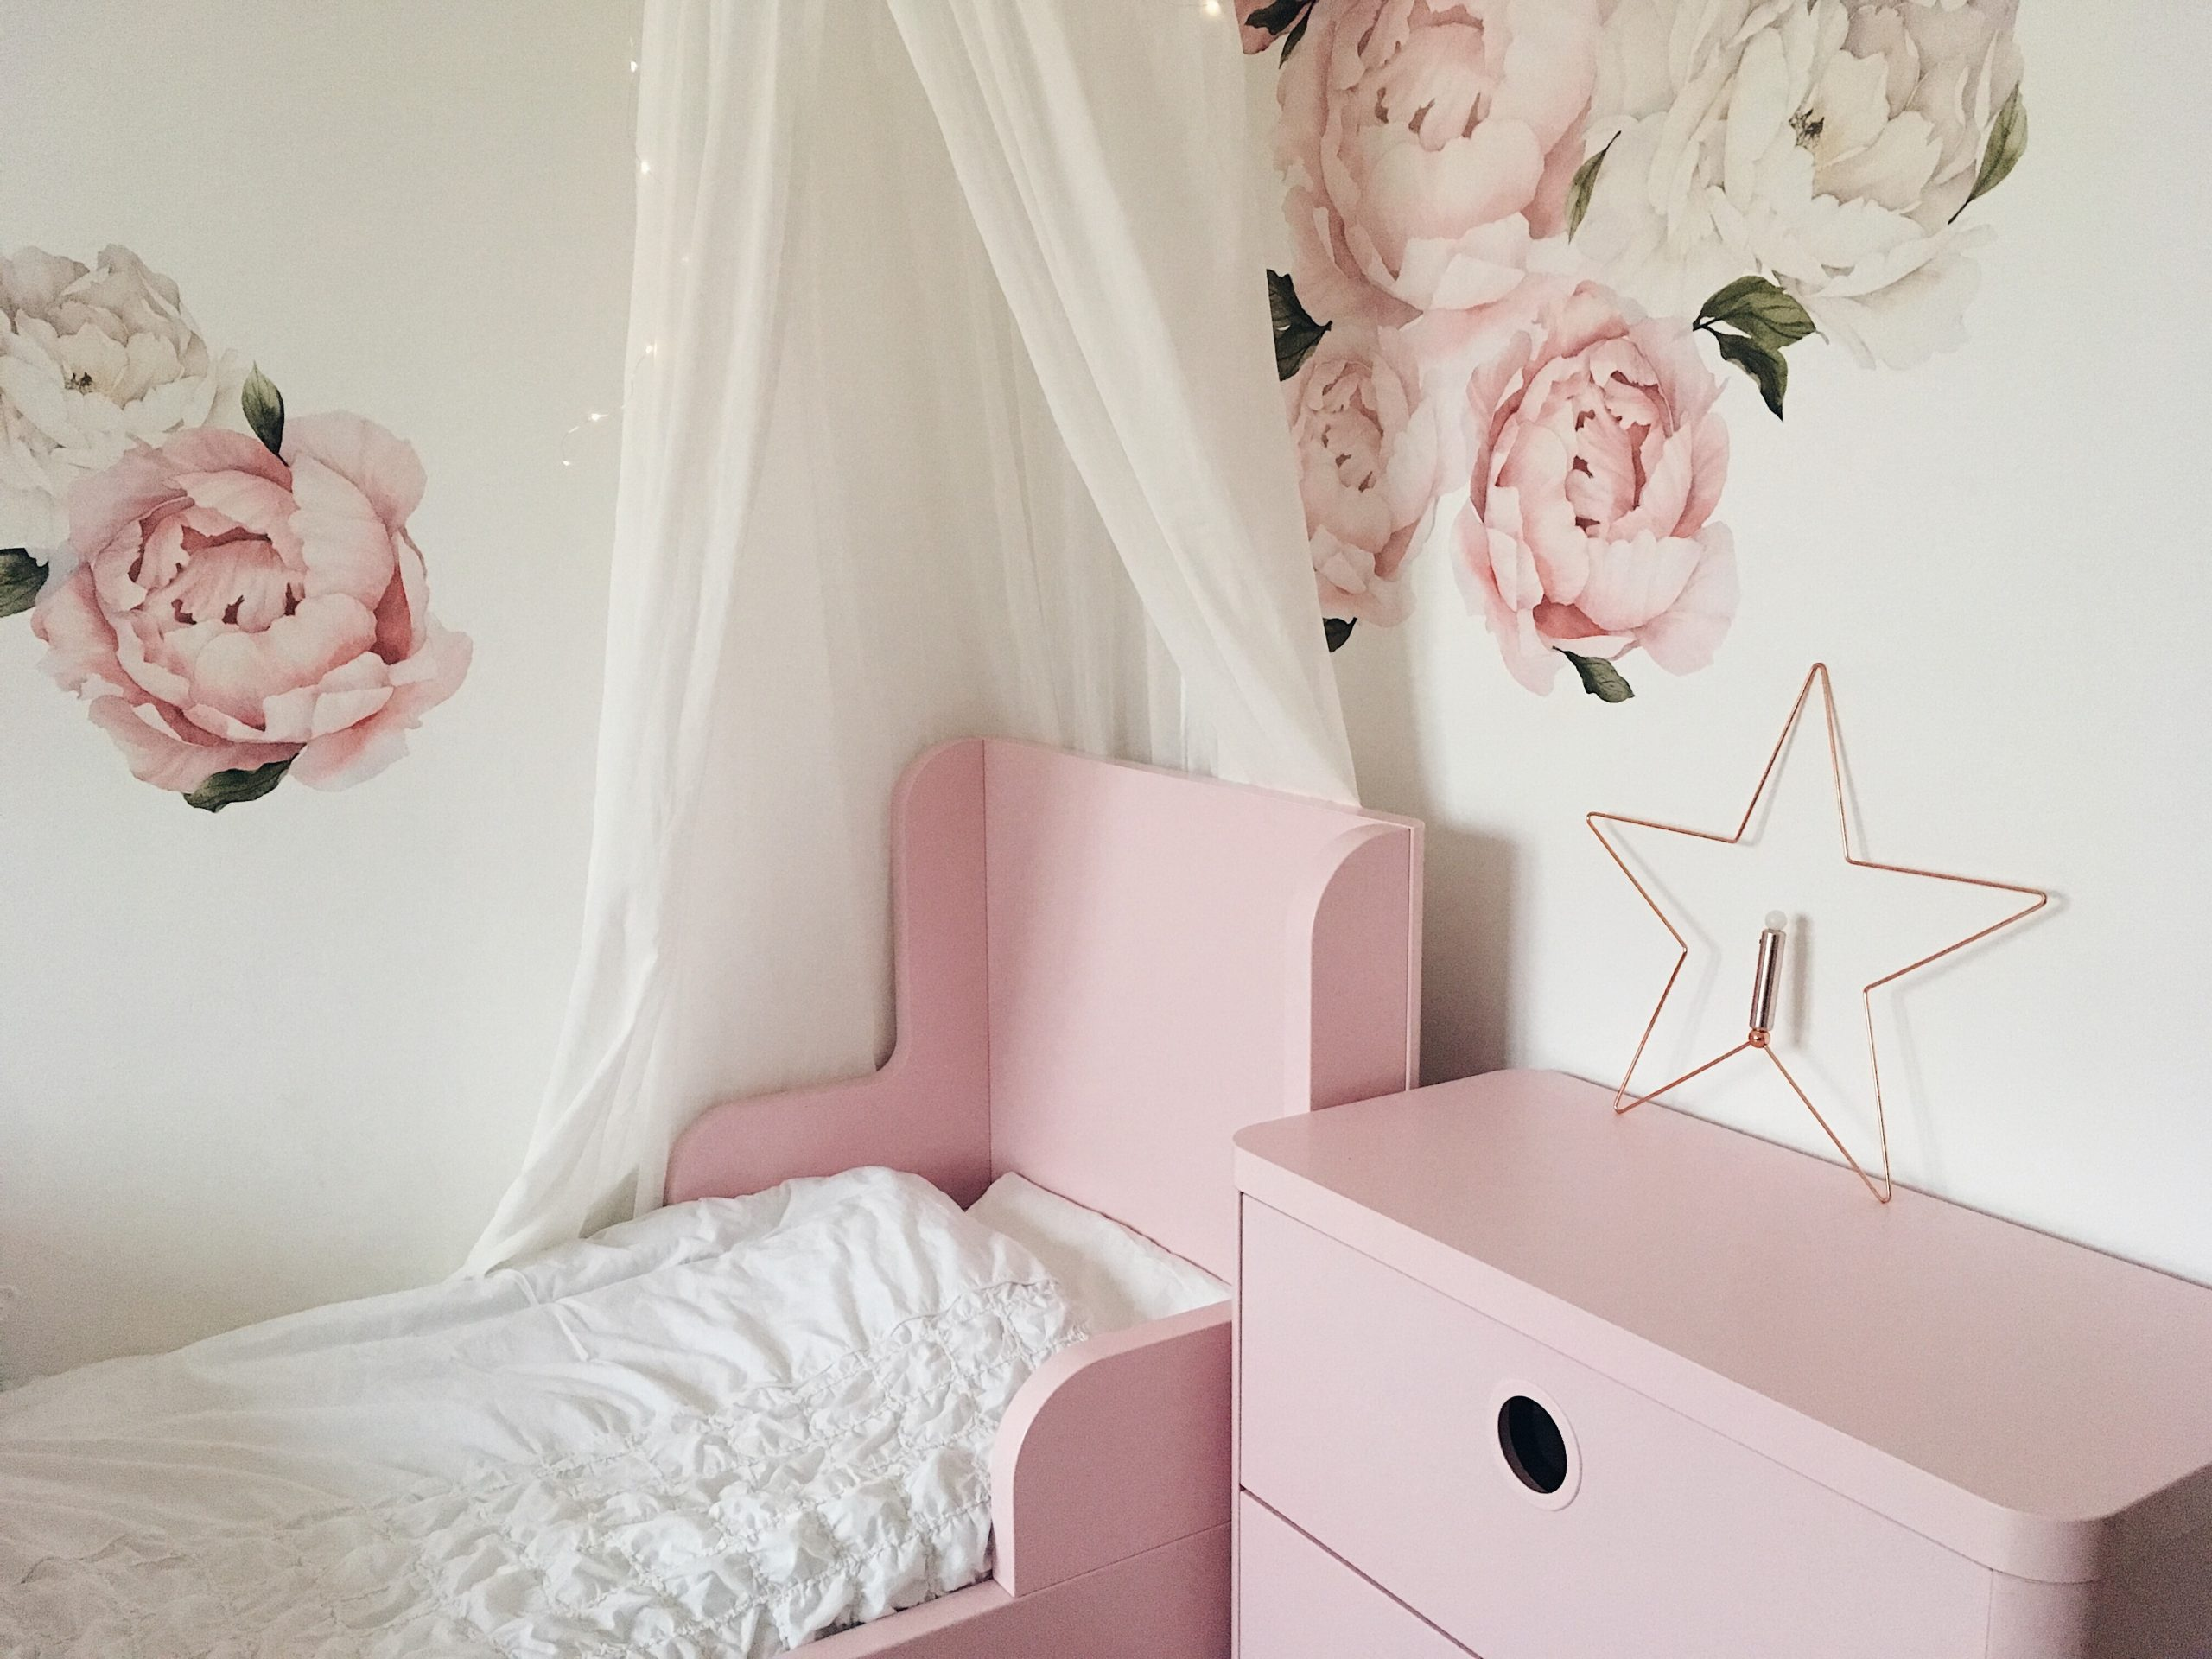 interior kids styling kids decor decorating diy peony flower boho magic ikea interiors scandinavian simplicity decals wall paper flowers home busunge bed girly girlsroom room kidsroom nursery dječja soba deokoracija more less ines mama blogerica mom blogger